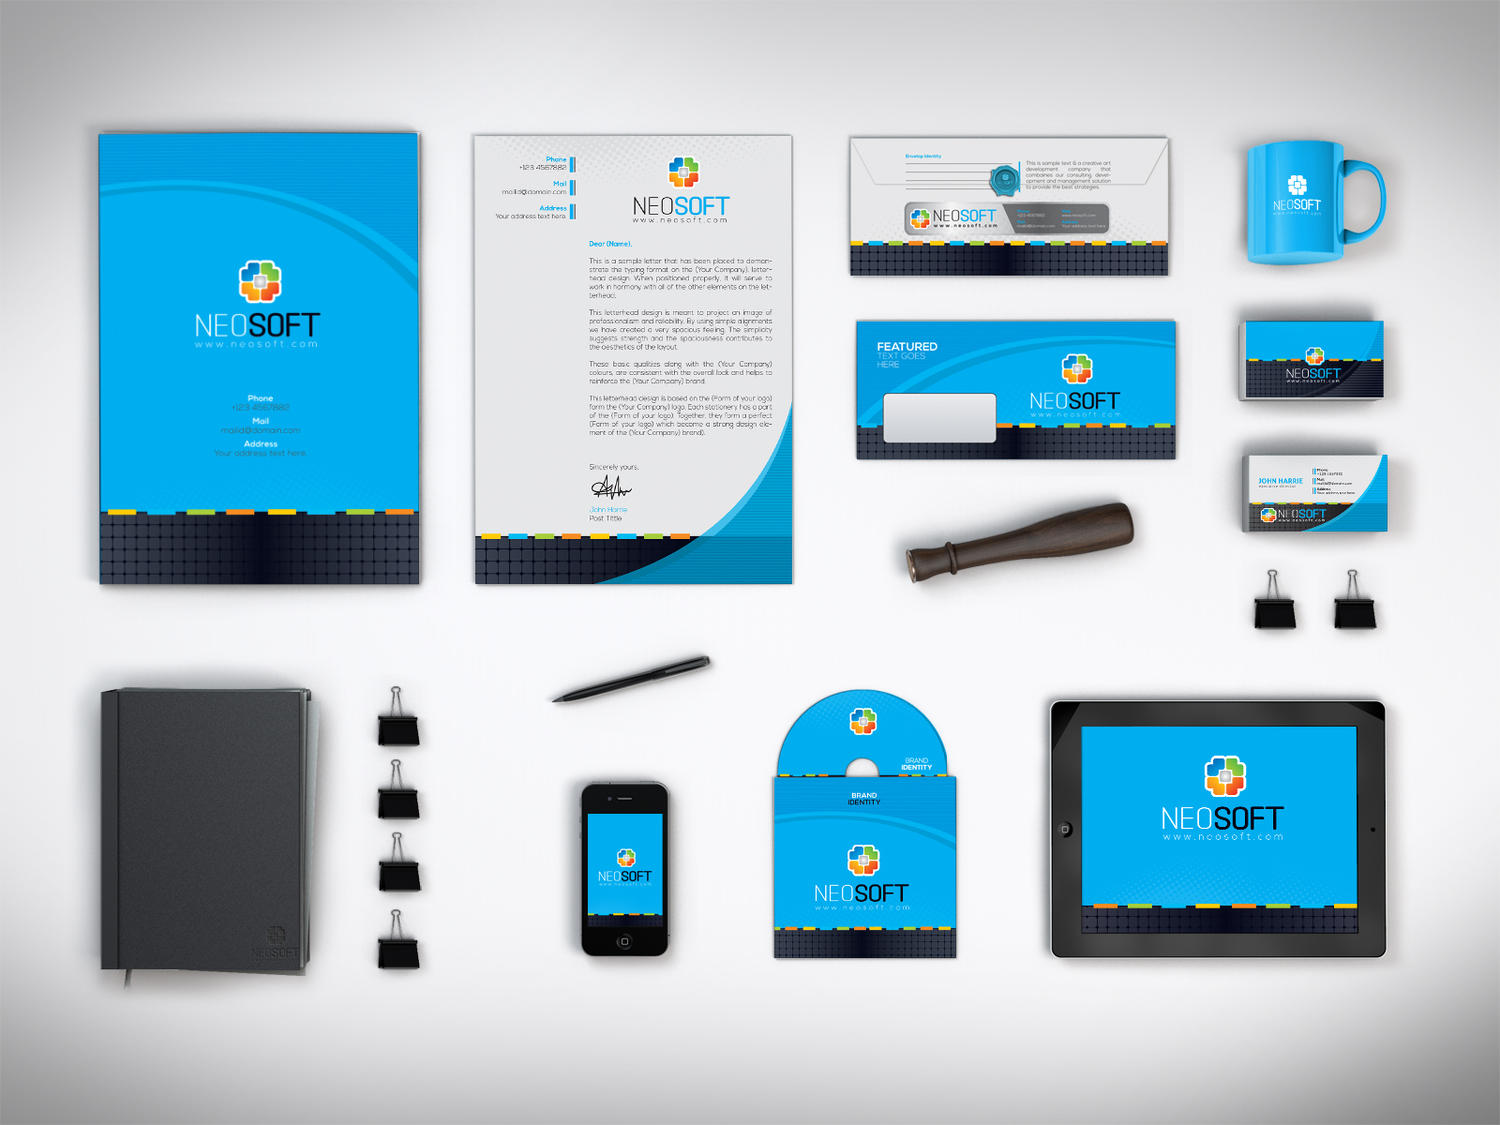 Corporate Identity Package Design by ContestDesign on Envato Studio